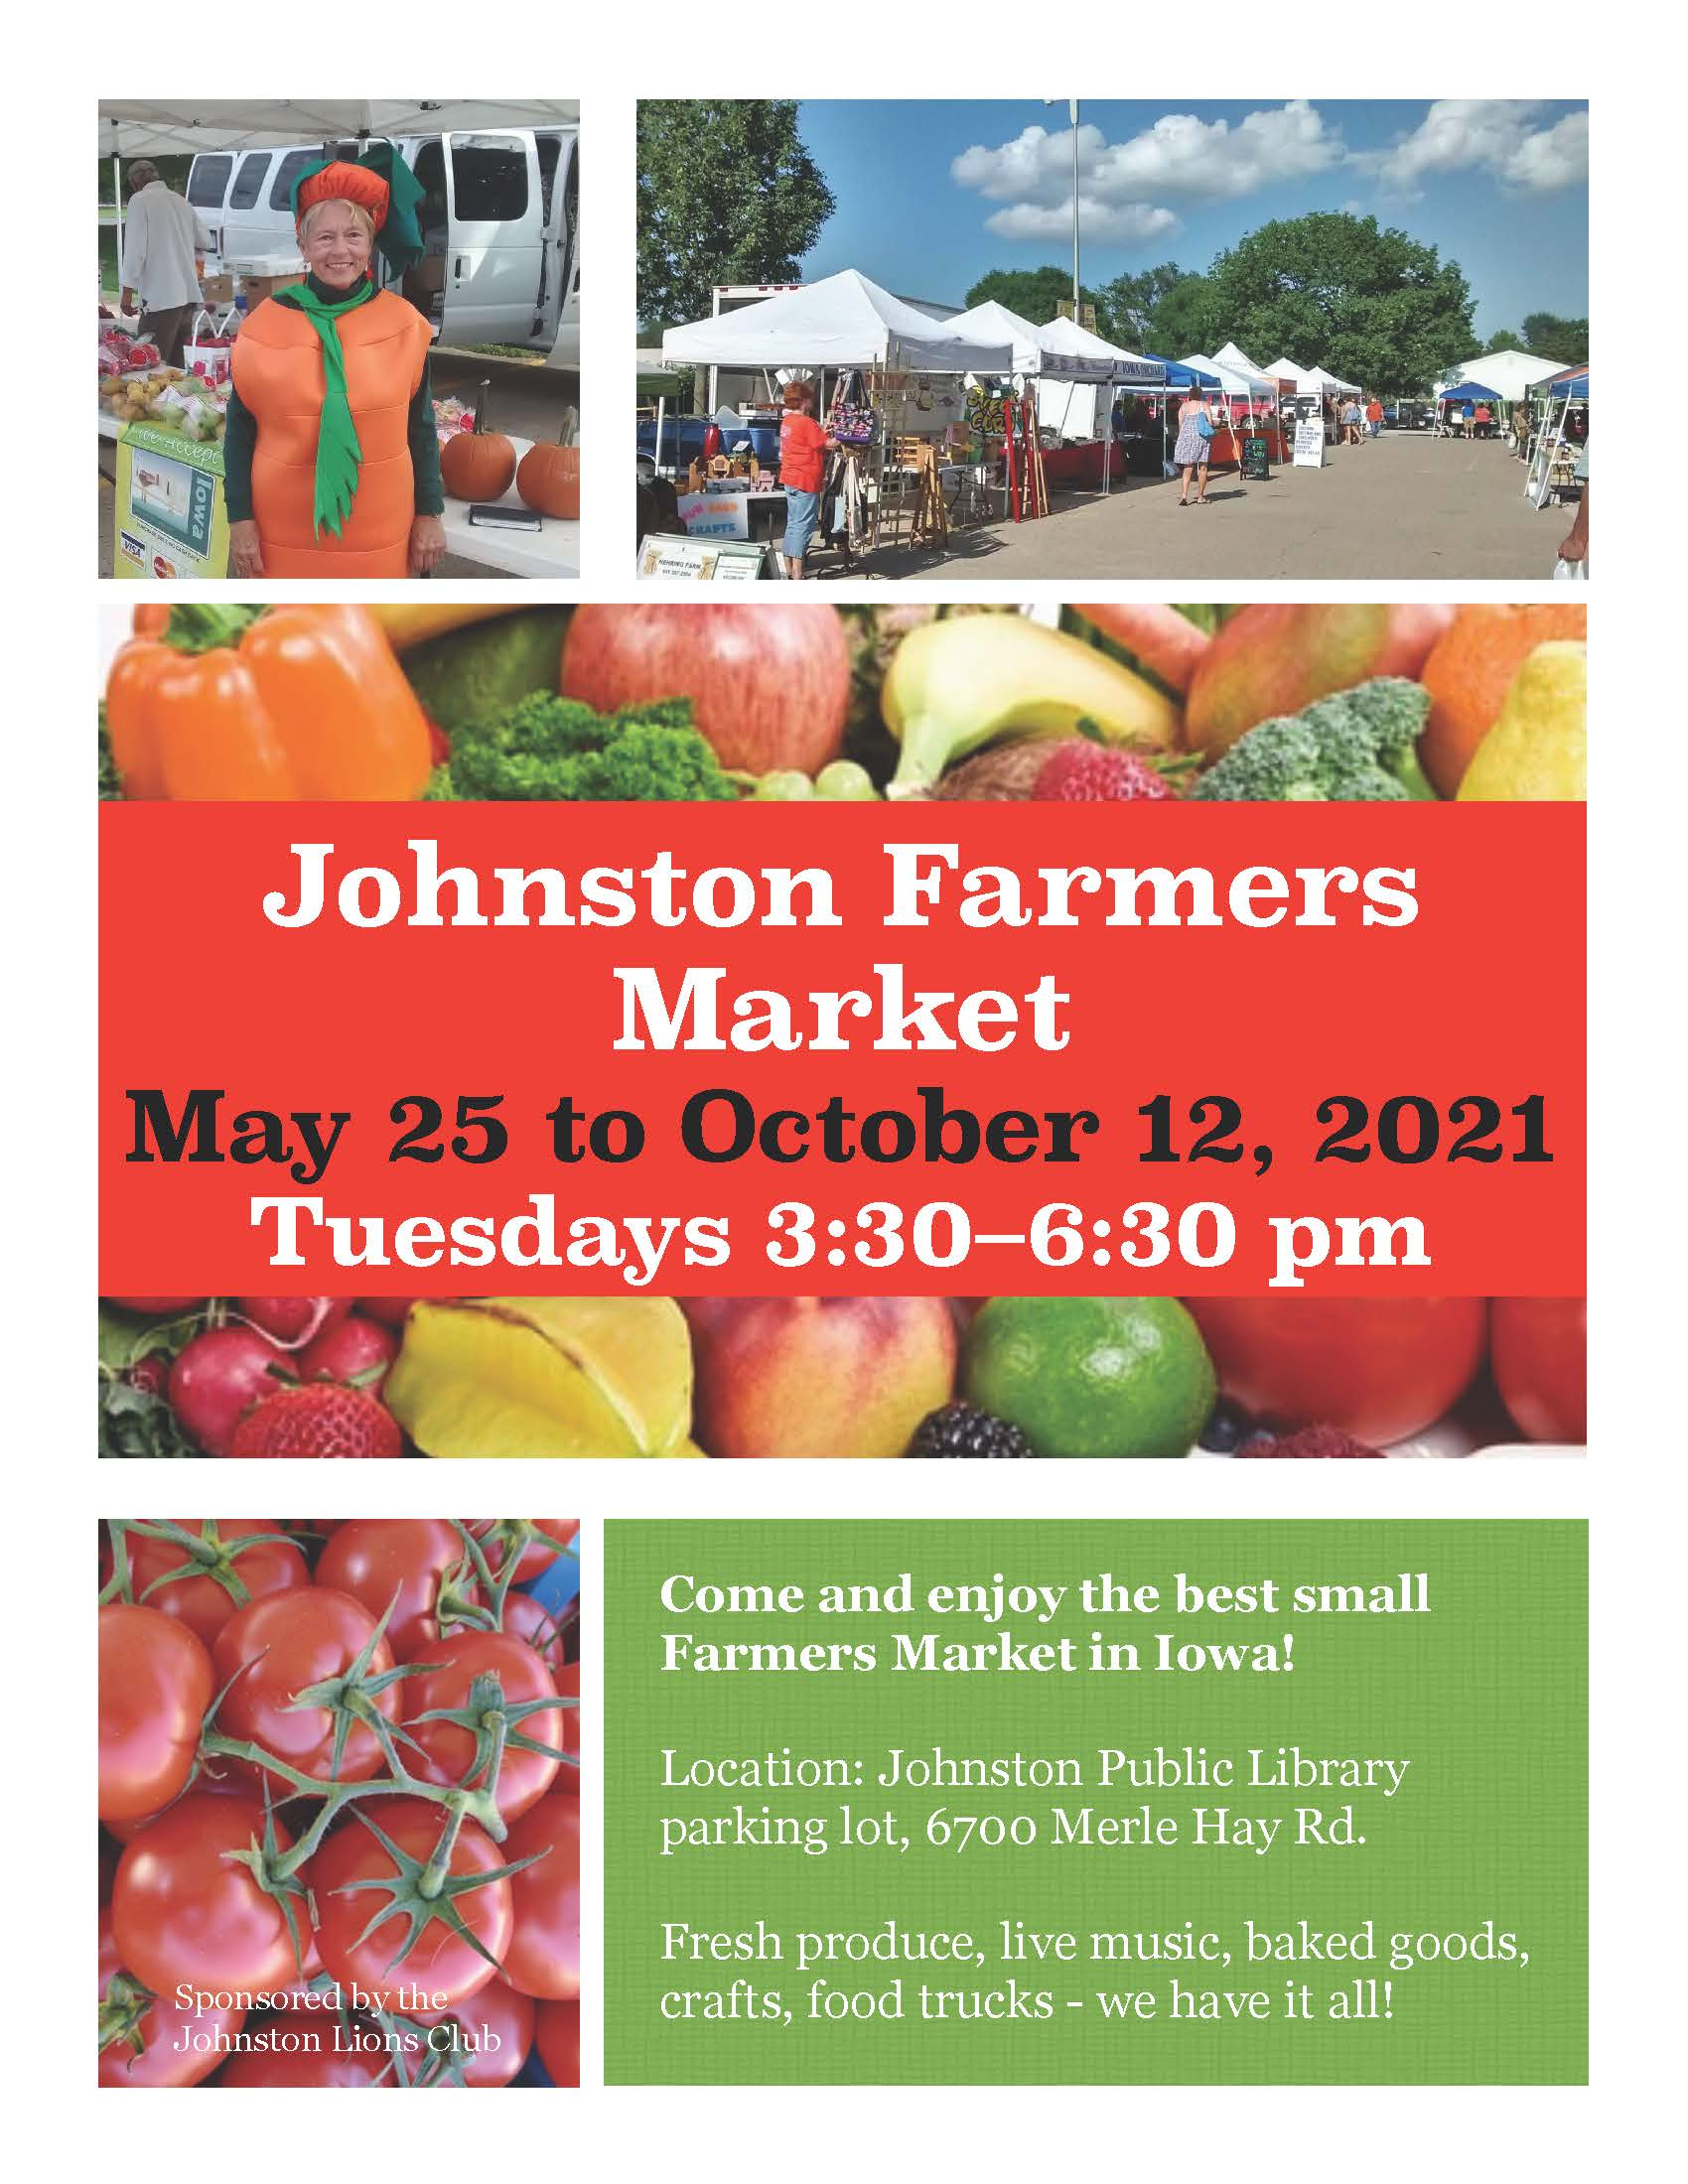 Johnston Farmers Market 2021